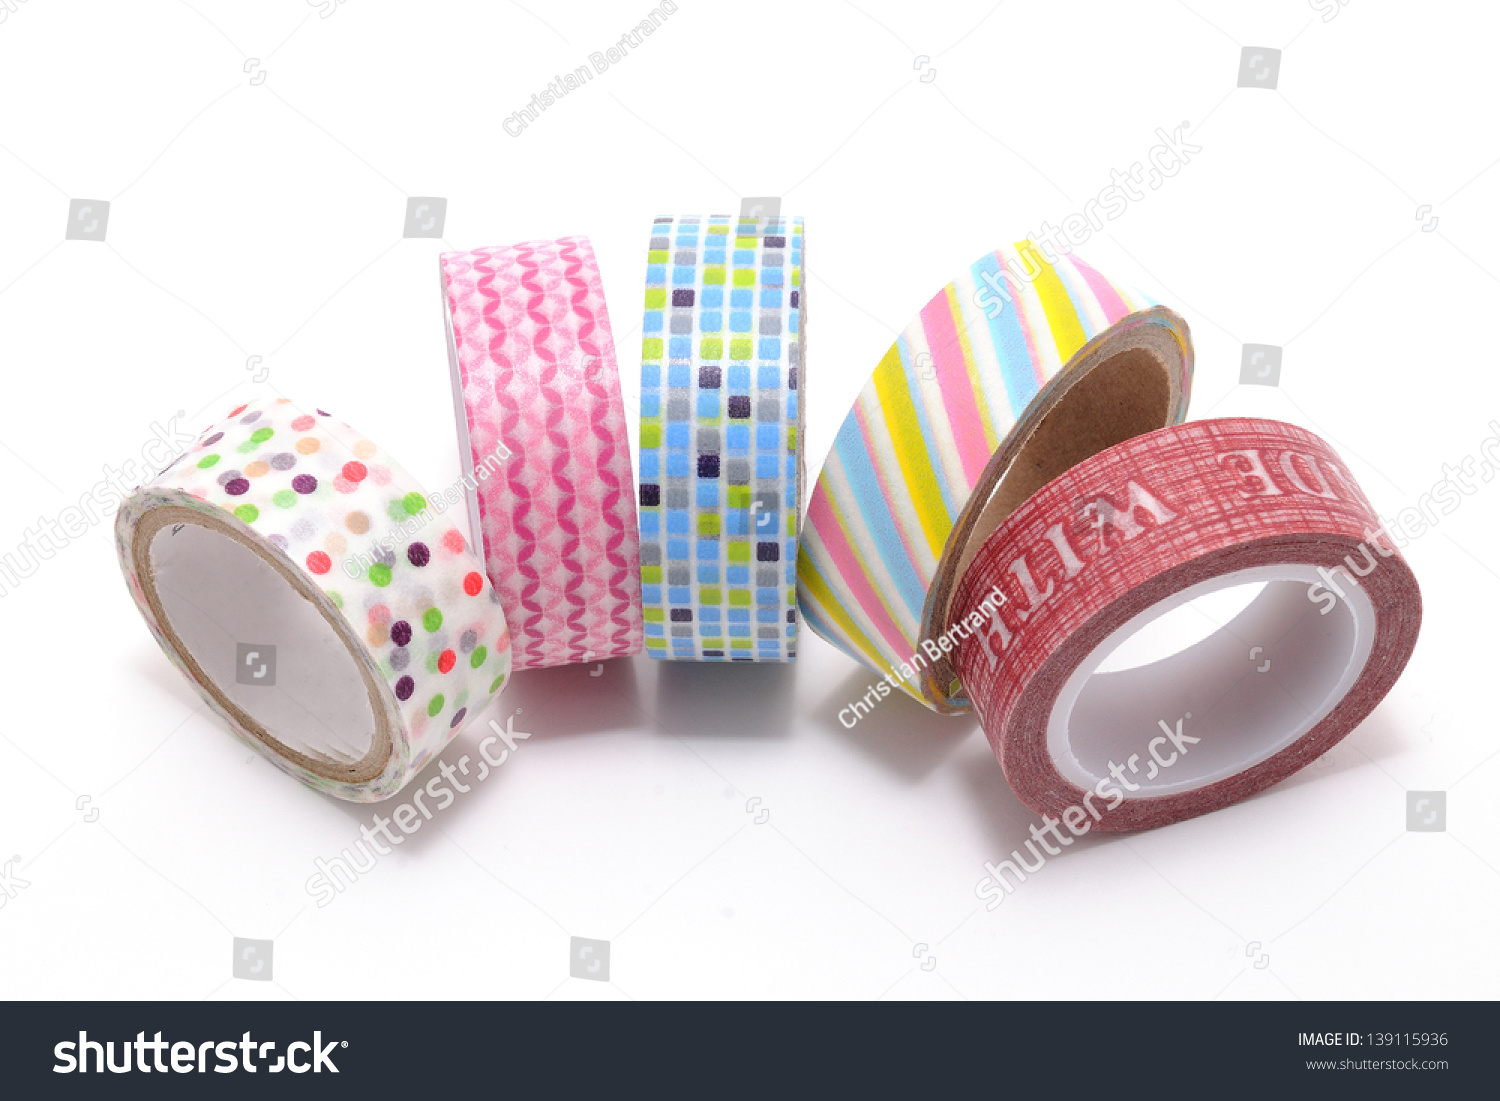 What can be made of tapes